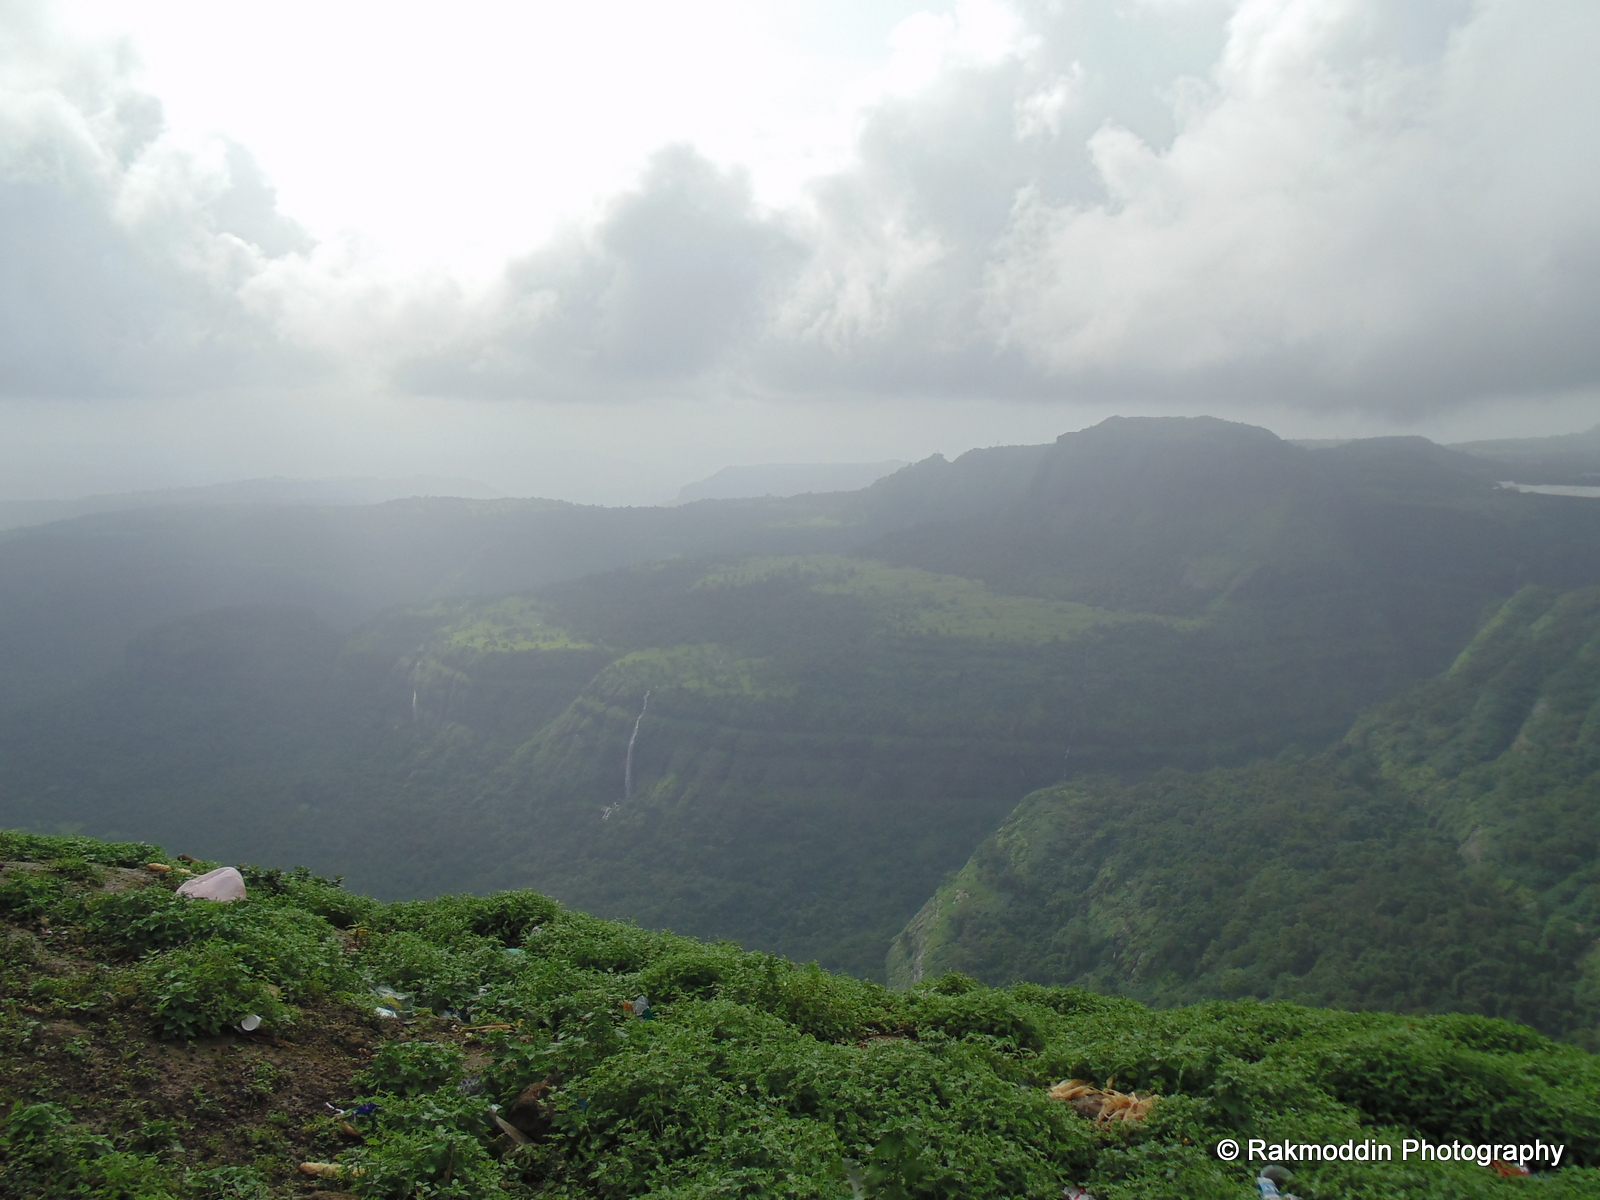 Lions point in Lonavala, near Pune, Maharashtra, India